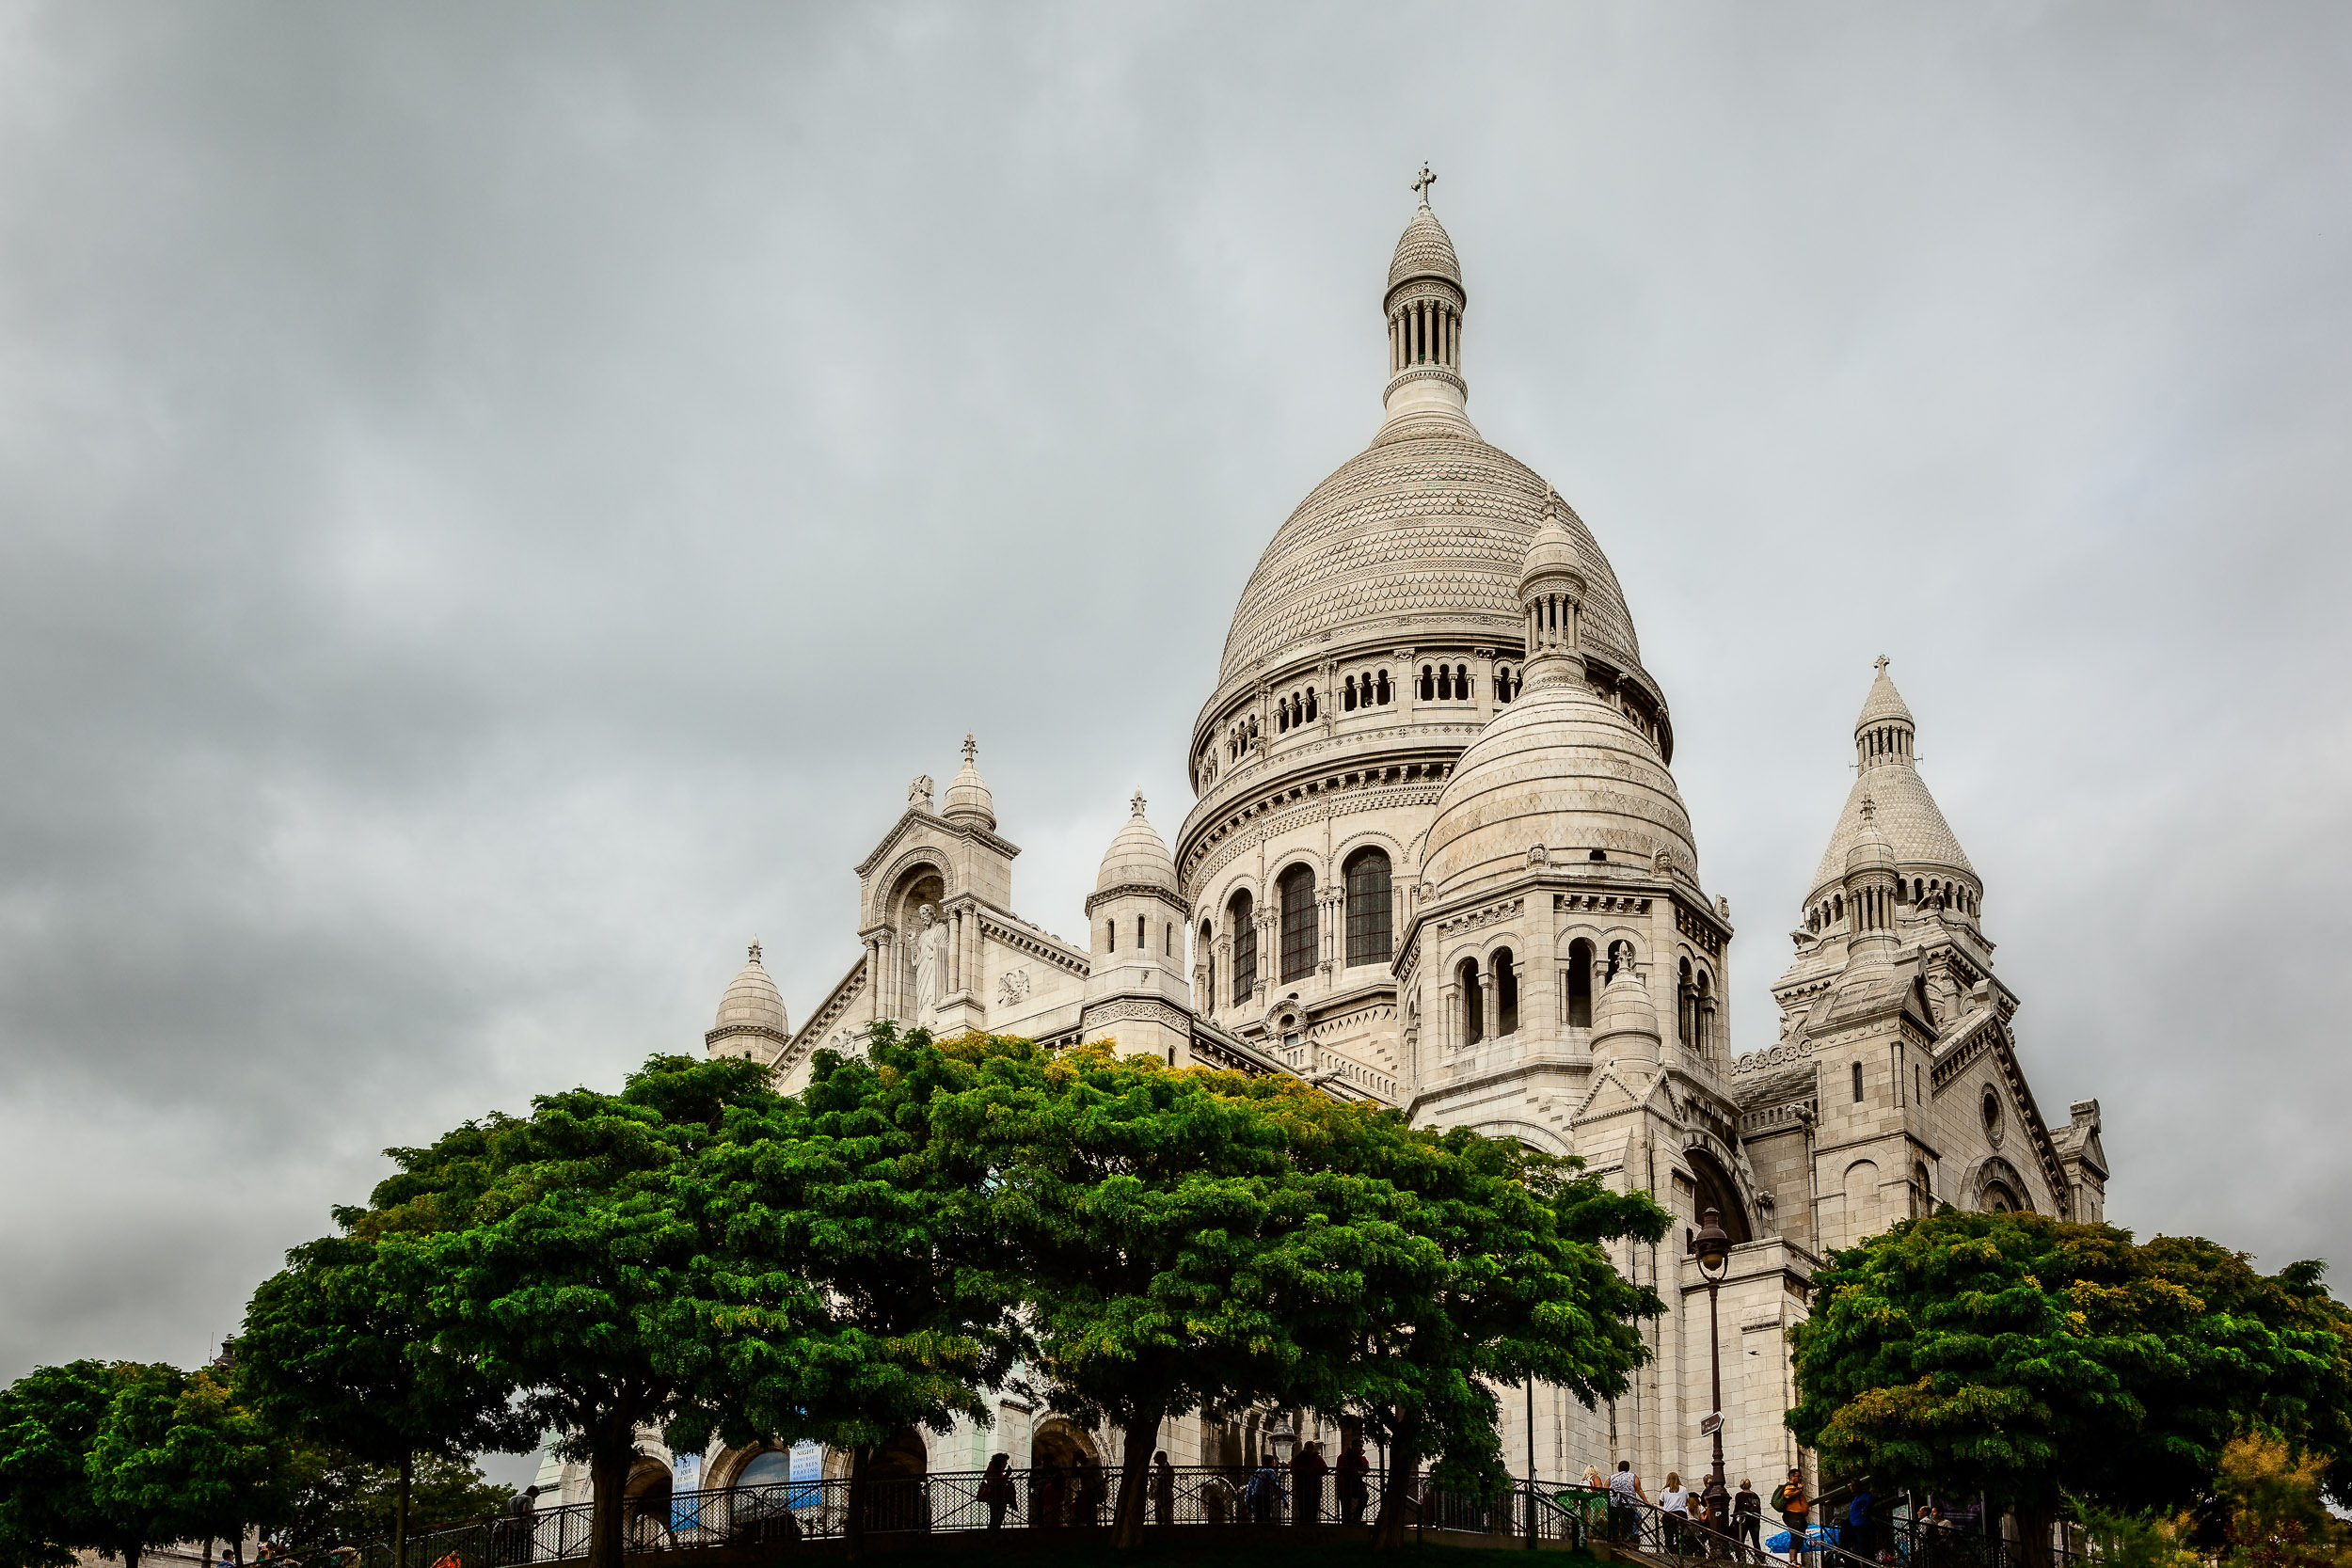 An upward view of the beautiful    Sacre Coeur Basilica    in    Montmarte    in    Paris, France   .